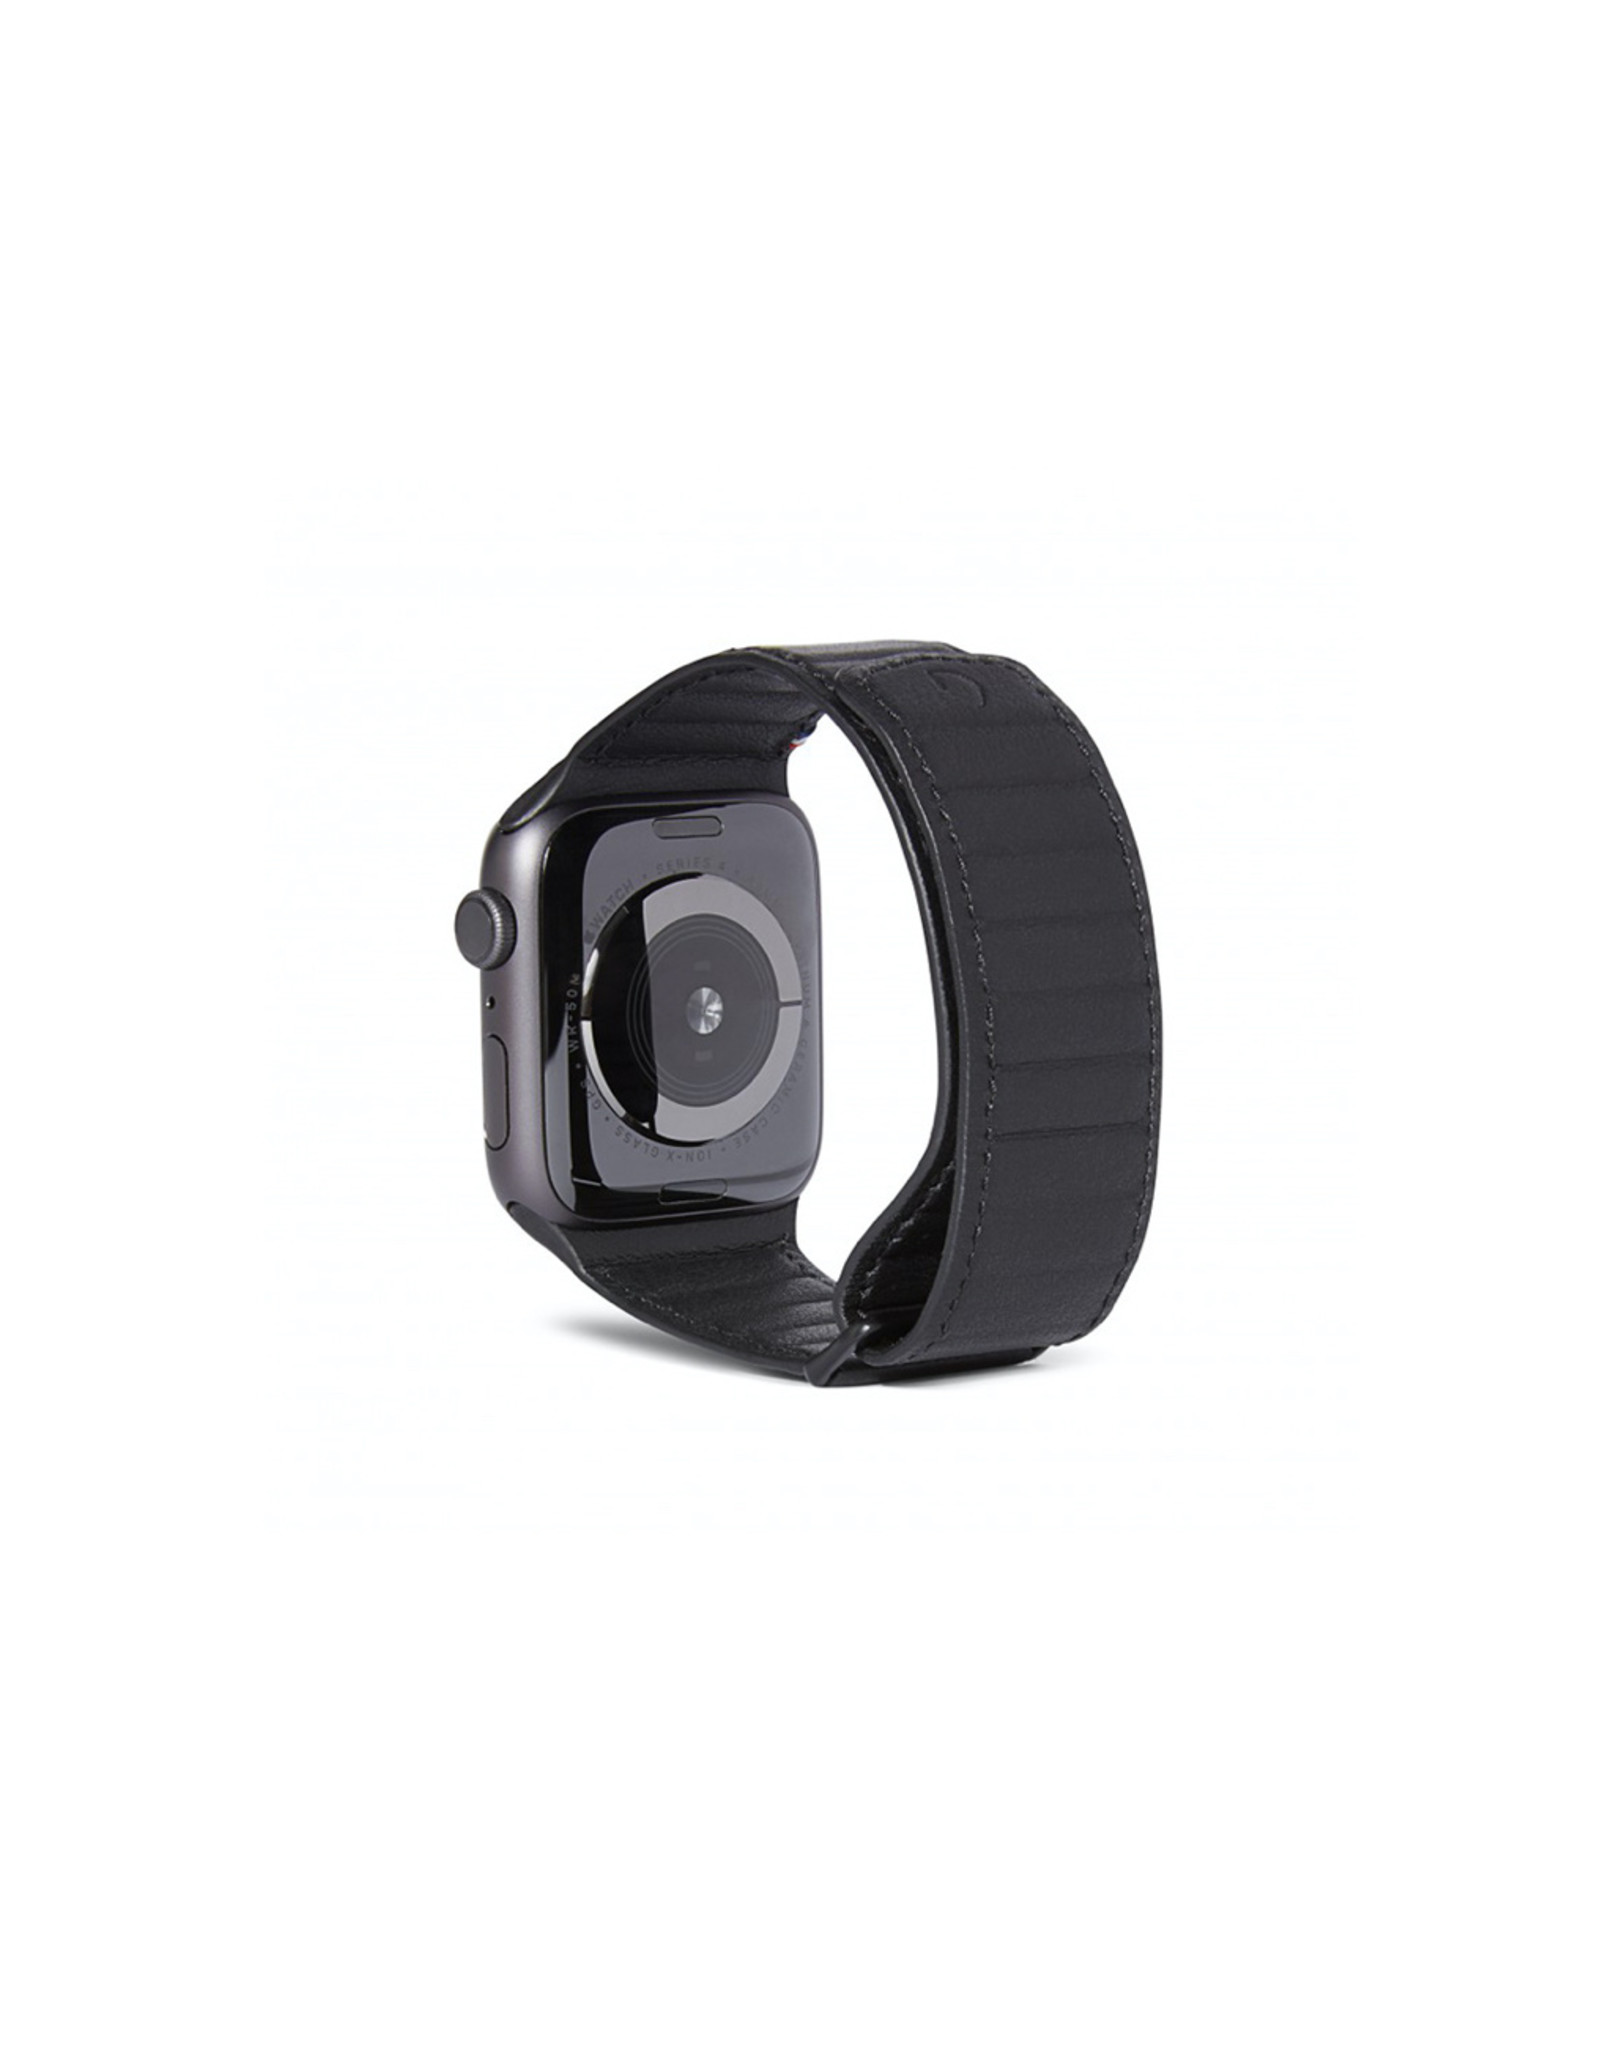 Decoded Leather Magnetic Traction Strap Series 5 / 4 (44mm) / 3 / 2 / 1 (42mm) Black | DC-D9AWS44TS1BK